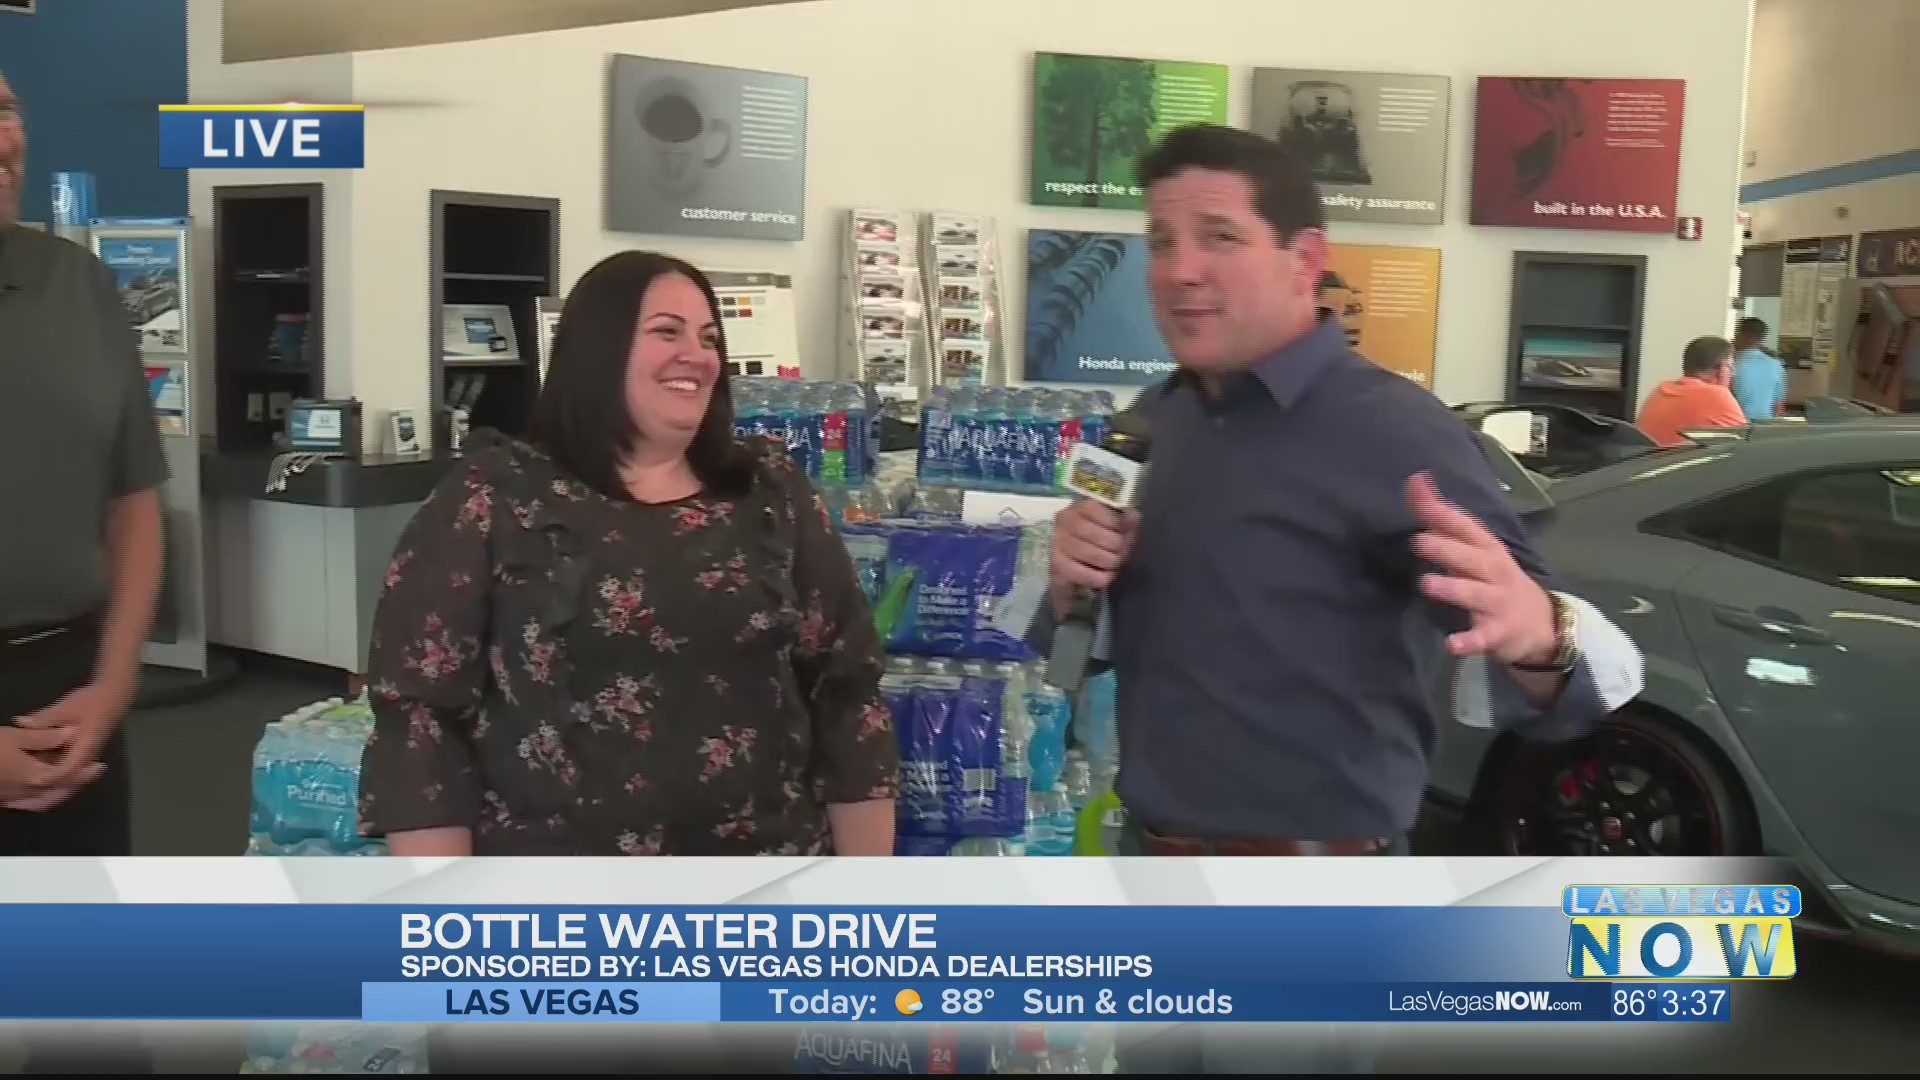 Las Vegas Honda Dealers are getting water to those in need